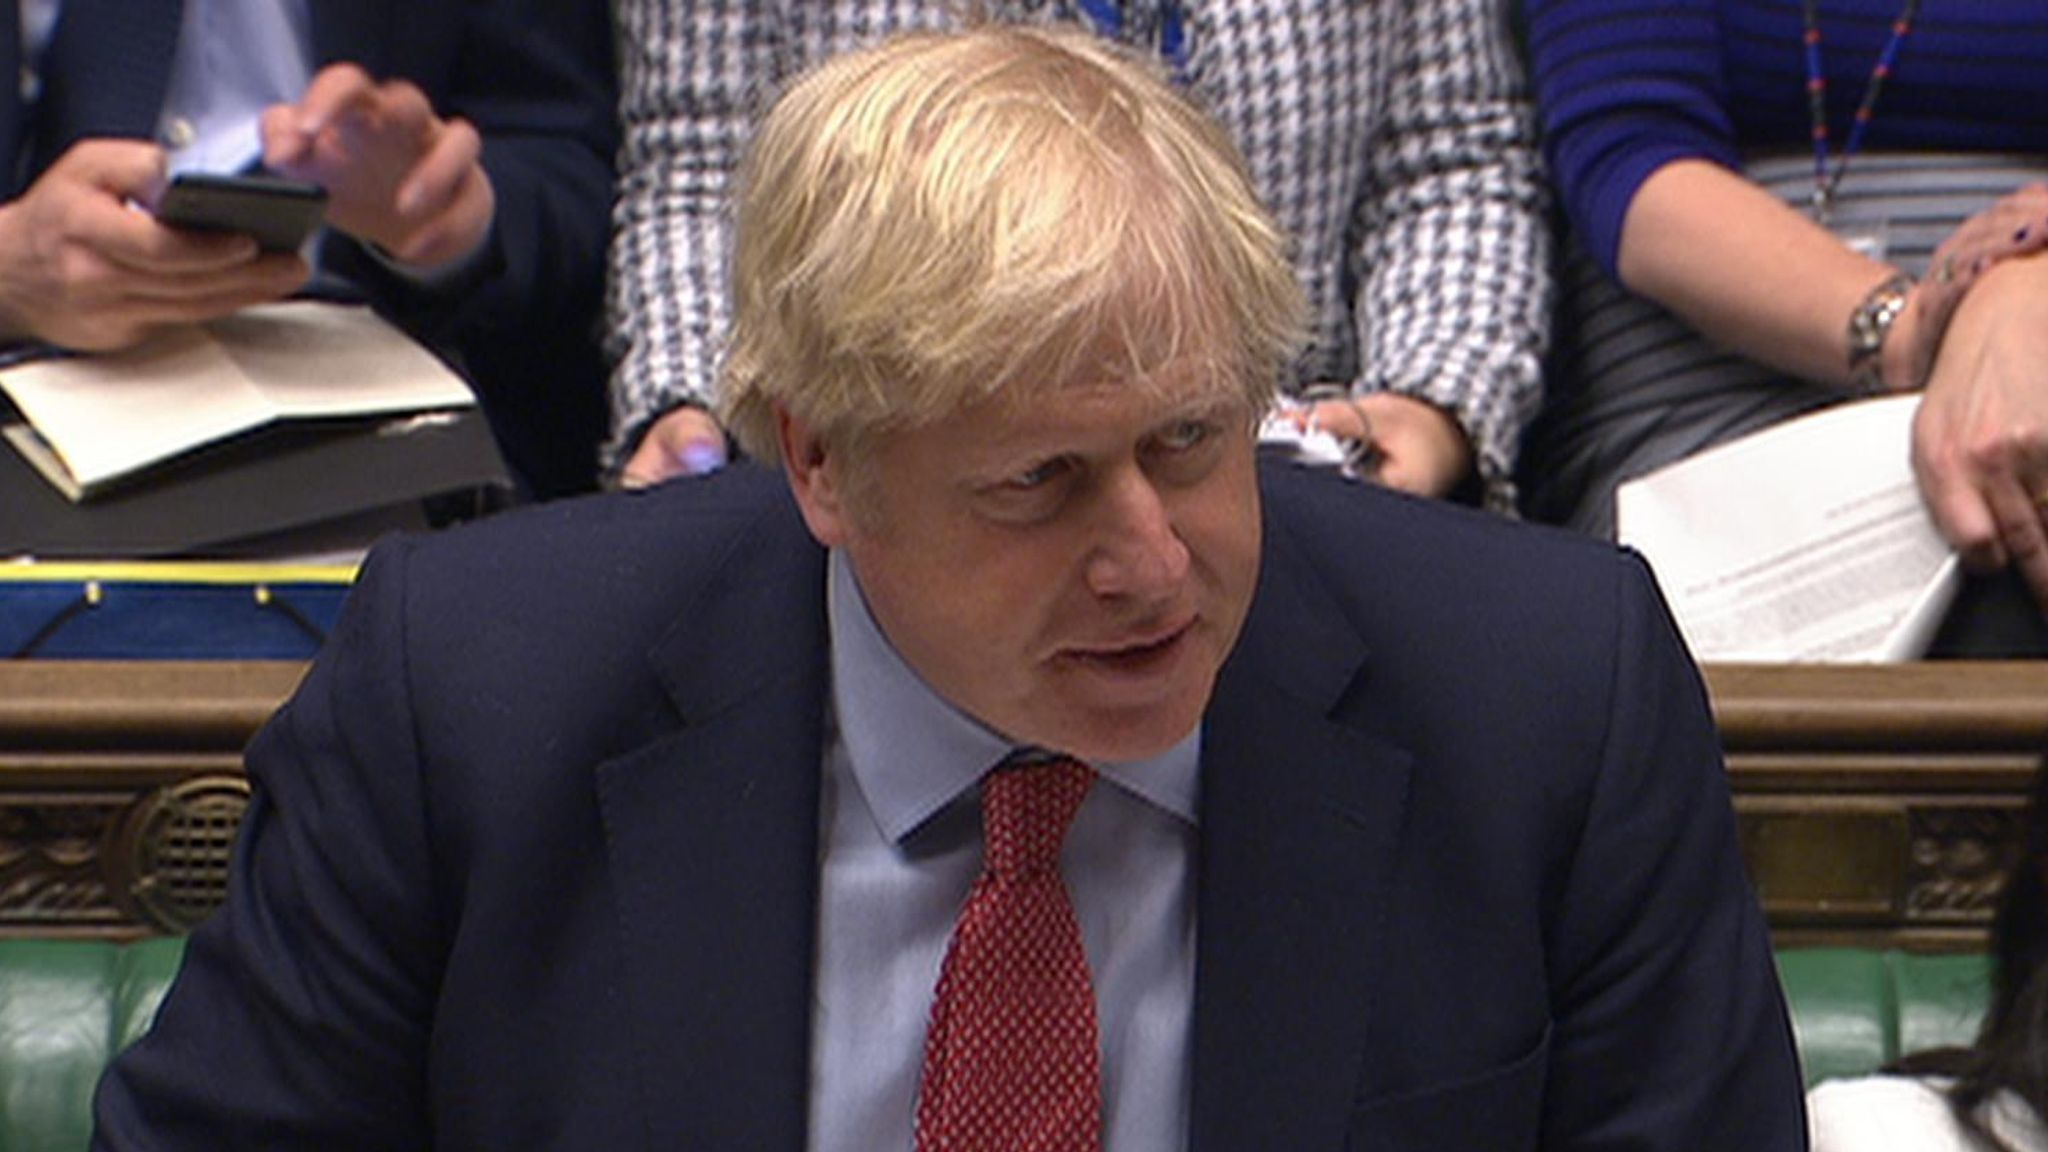 Boris Johnson's Brexit deal set to become law as it clears House of Lords